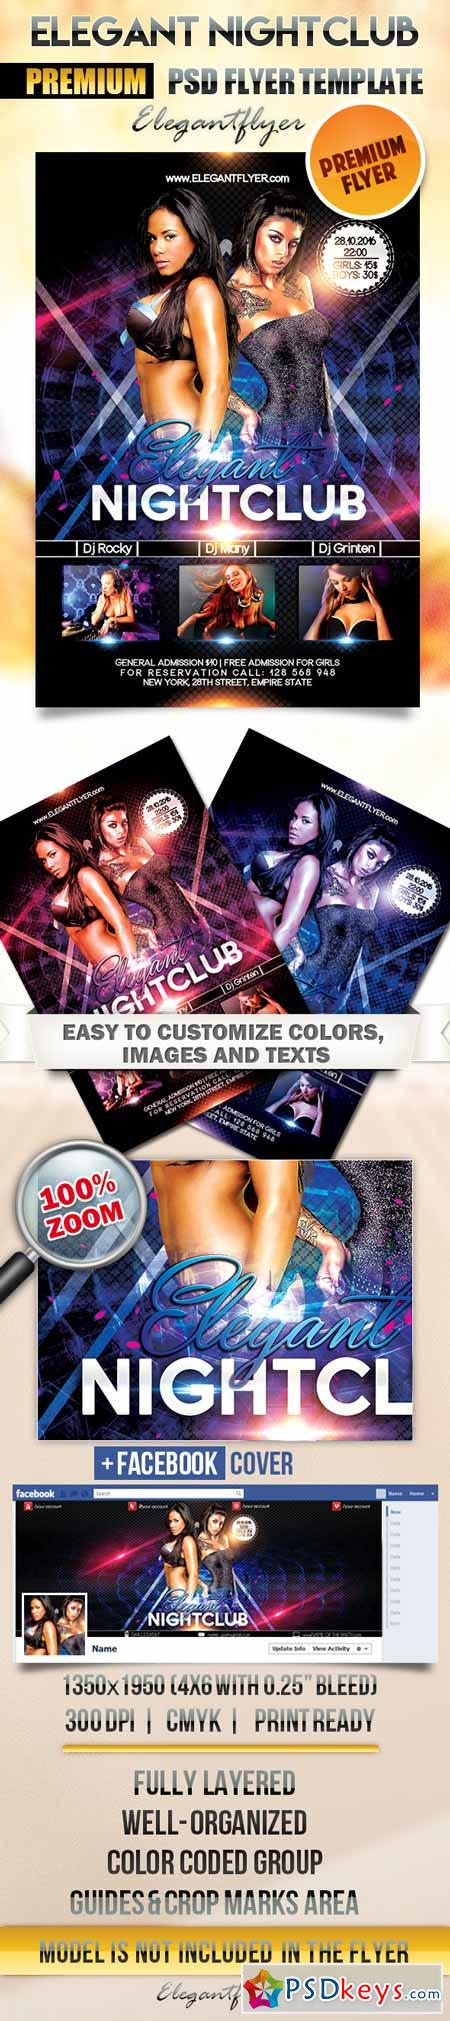 Elegant Nightclub – Flyer PSD Template + Facebook Cover